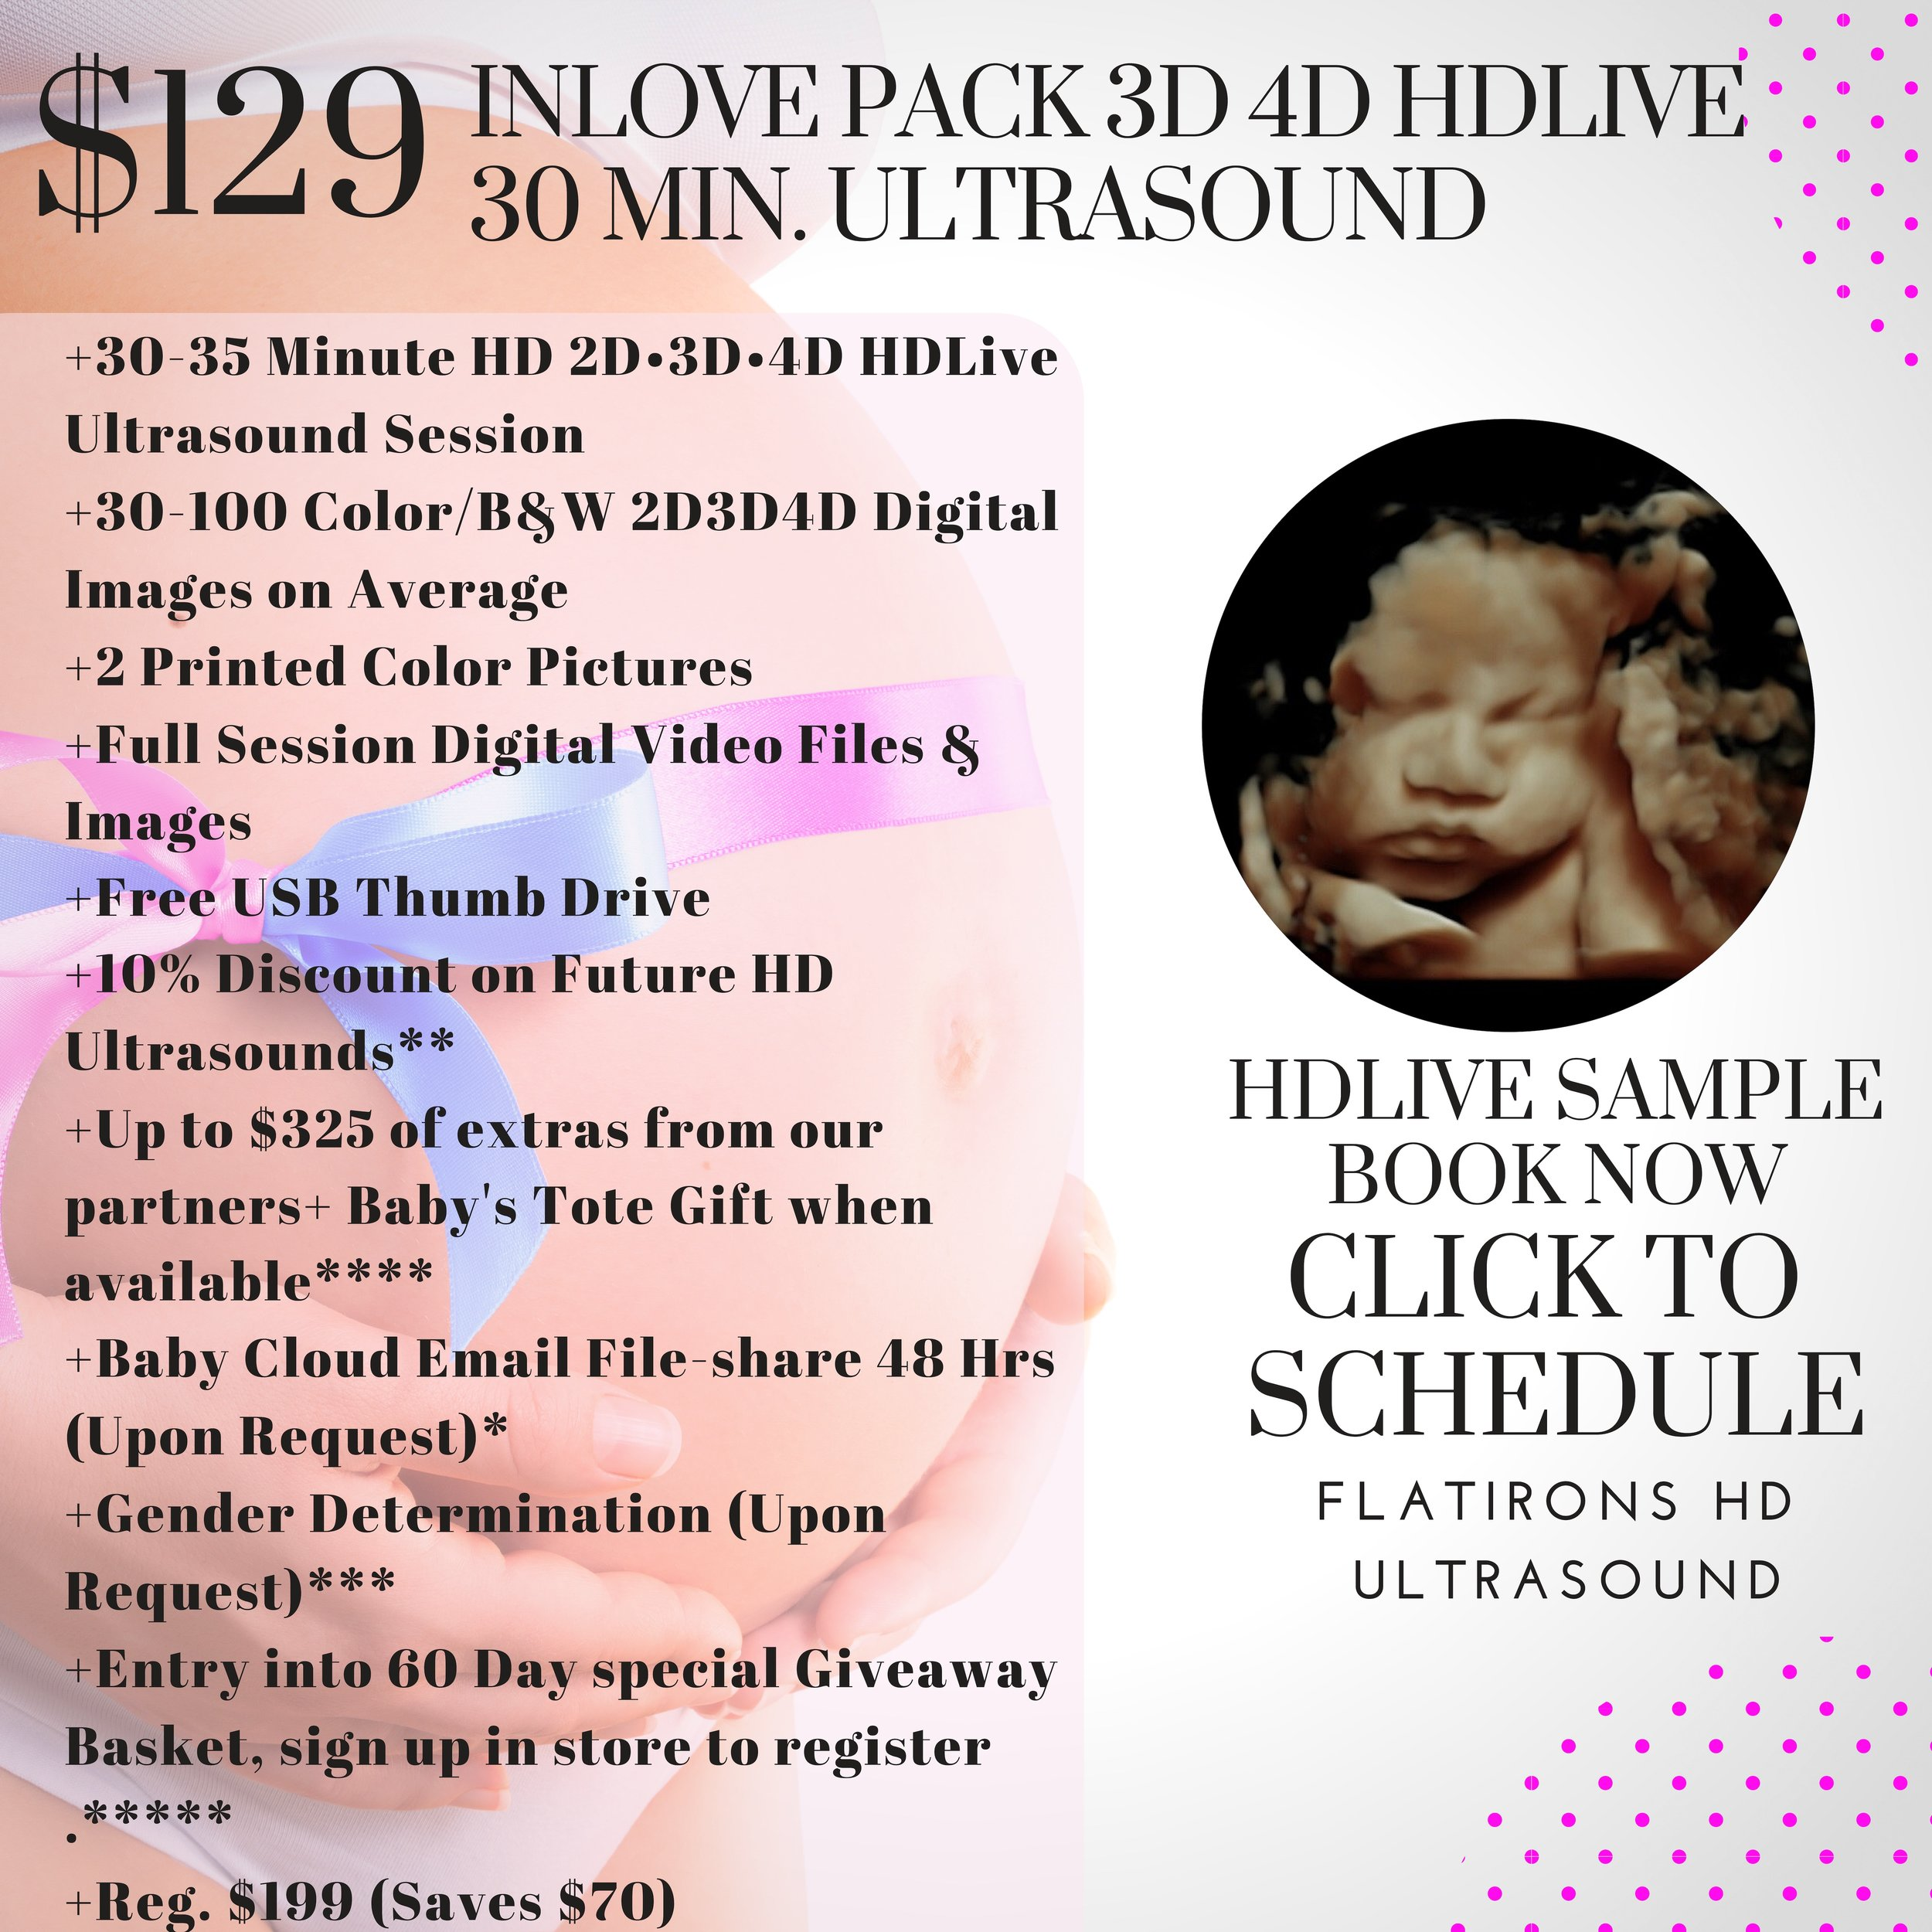 Inlove Ultrasound Package.jpg